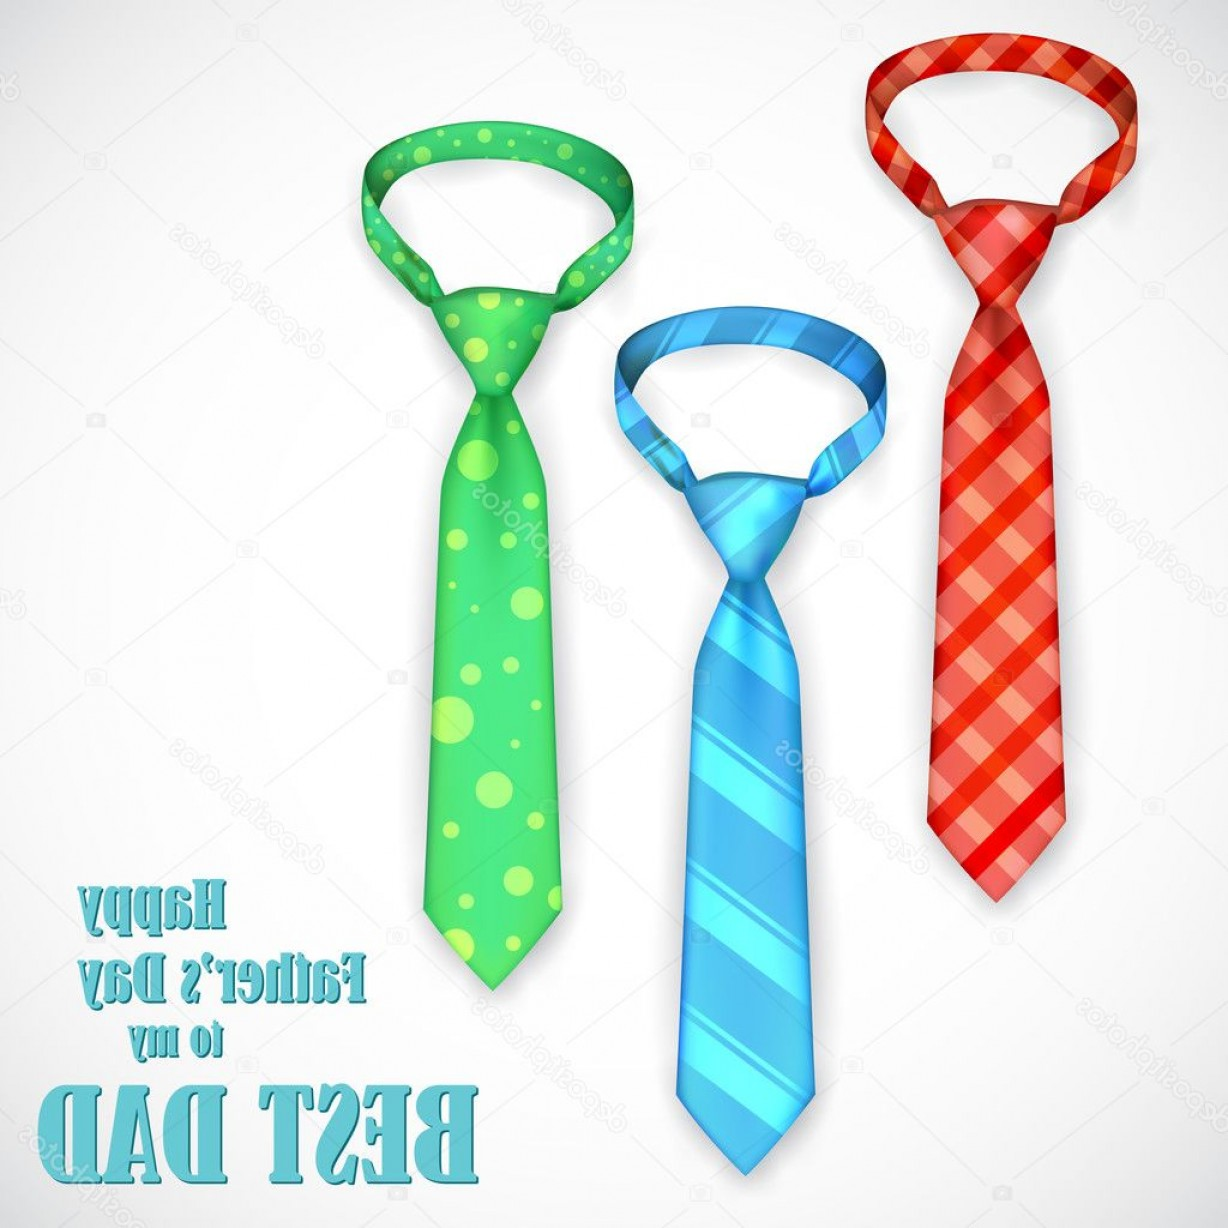 1228x1228 Stock Illustration Tie In Fathers Day Card Shopatcloth